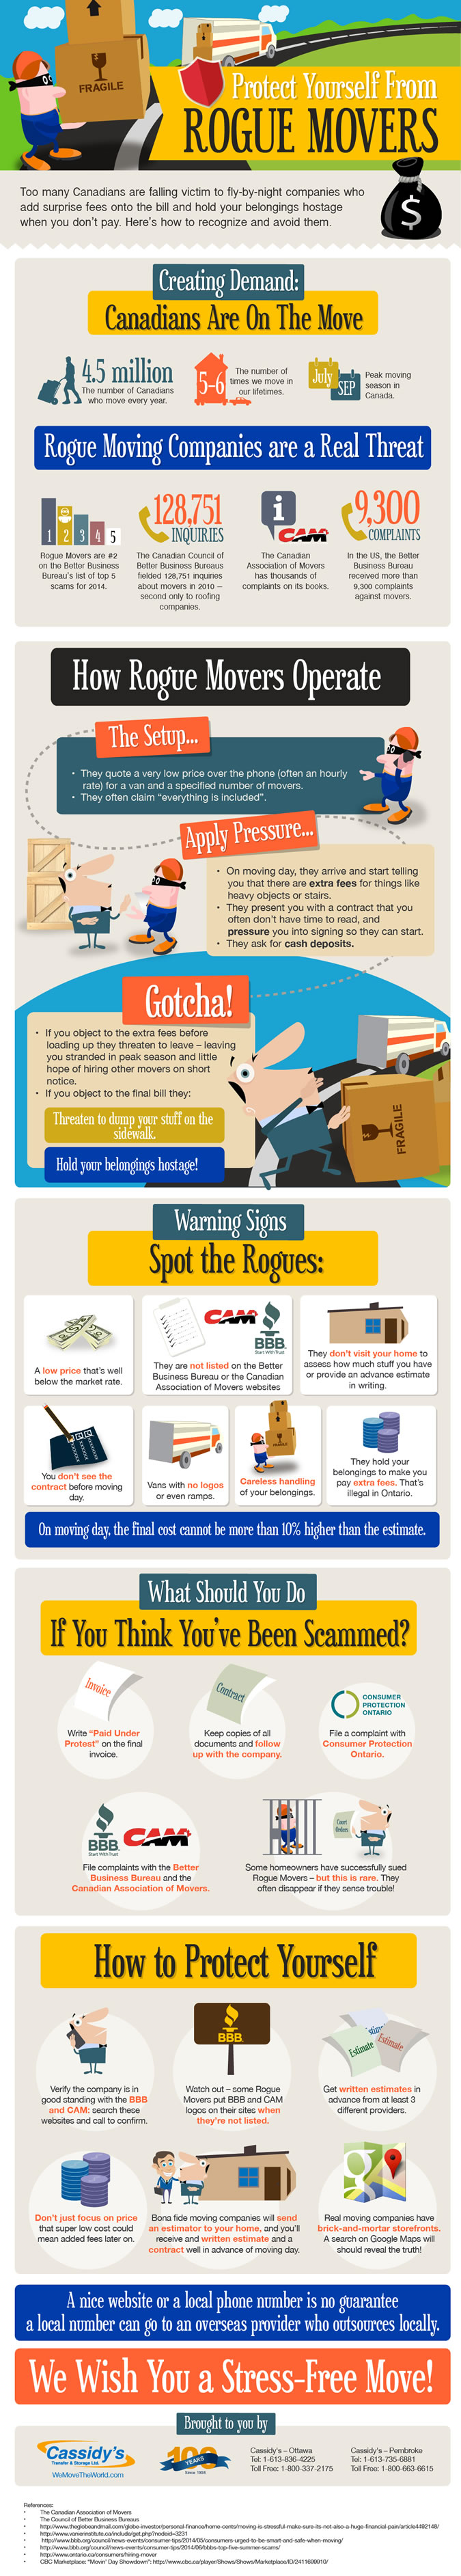 Protect Yourself from Rogue Movers Infographic